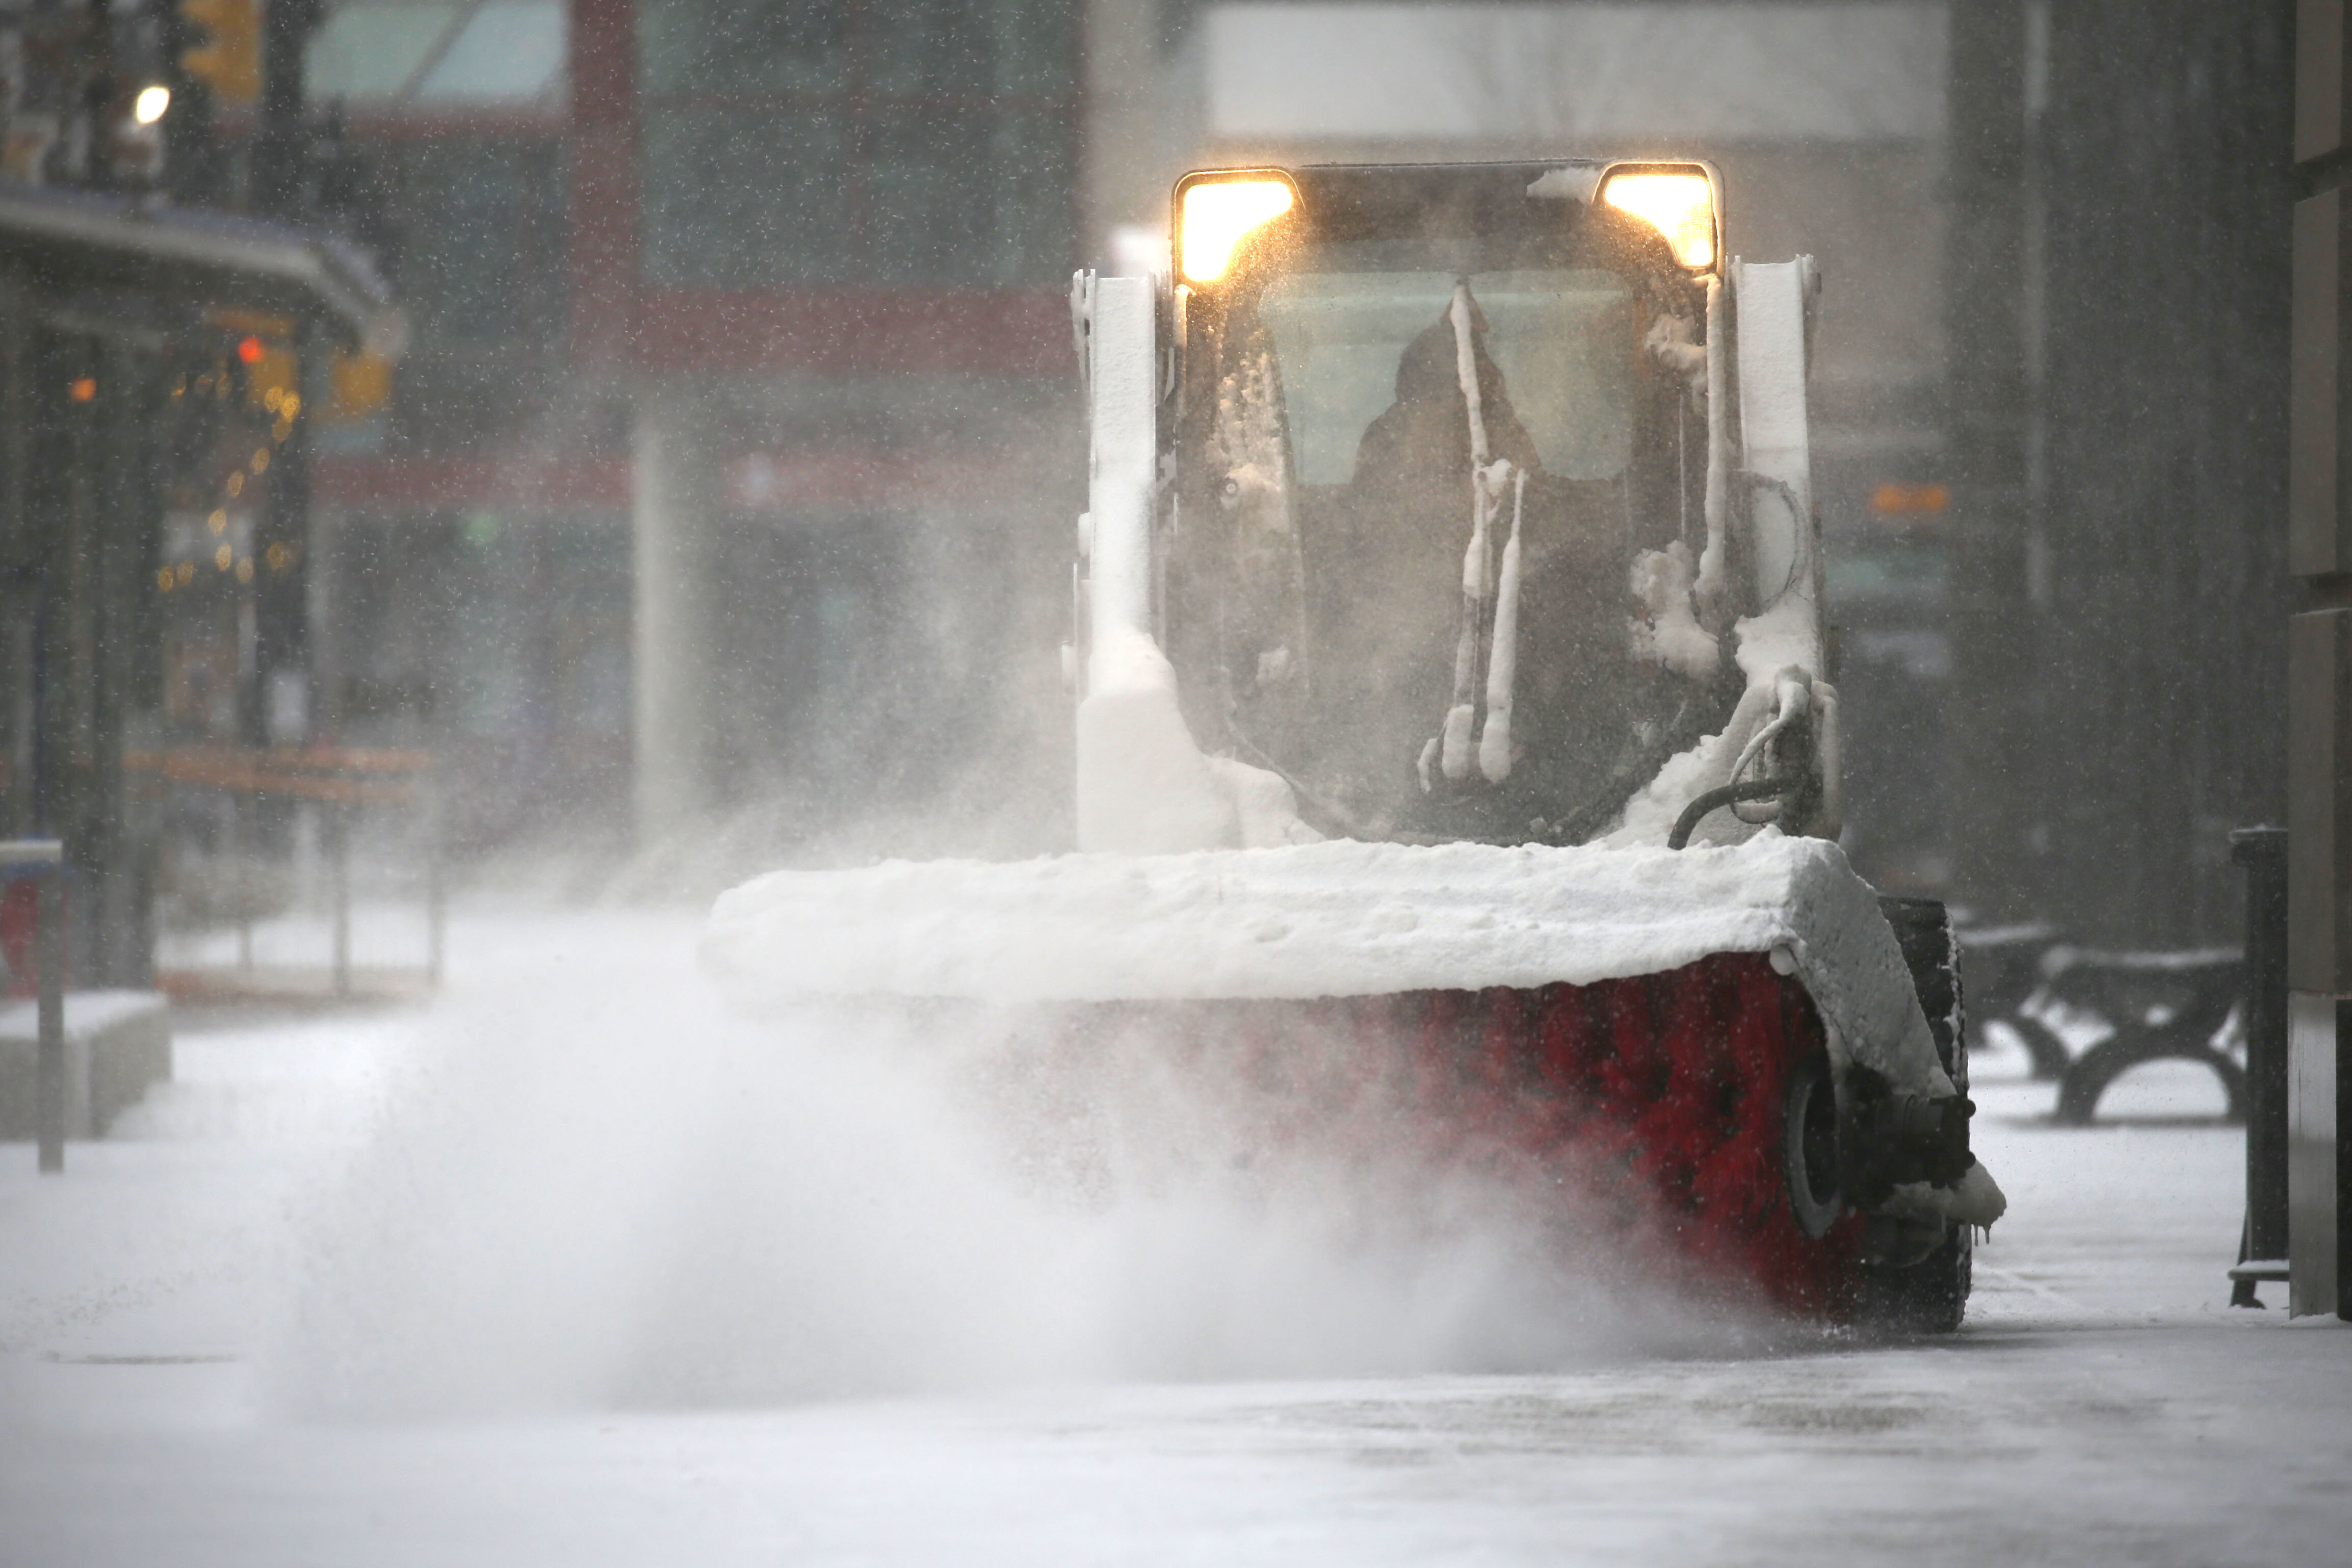 A snow sweeping machine clears a path on the sidewalk on Main St. in downtown Buffalo onSaturday, Jan. 28, 2017.  (Robert Kirkham/Buffalo News)